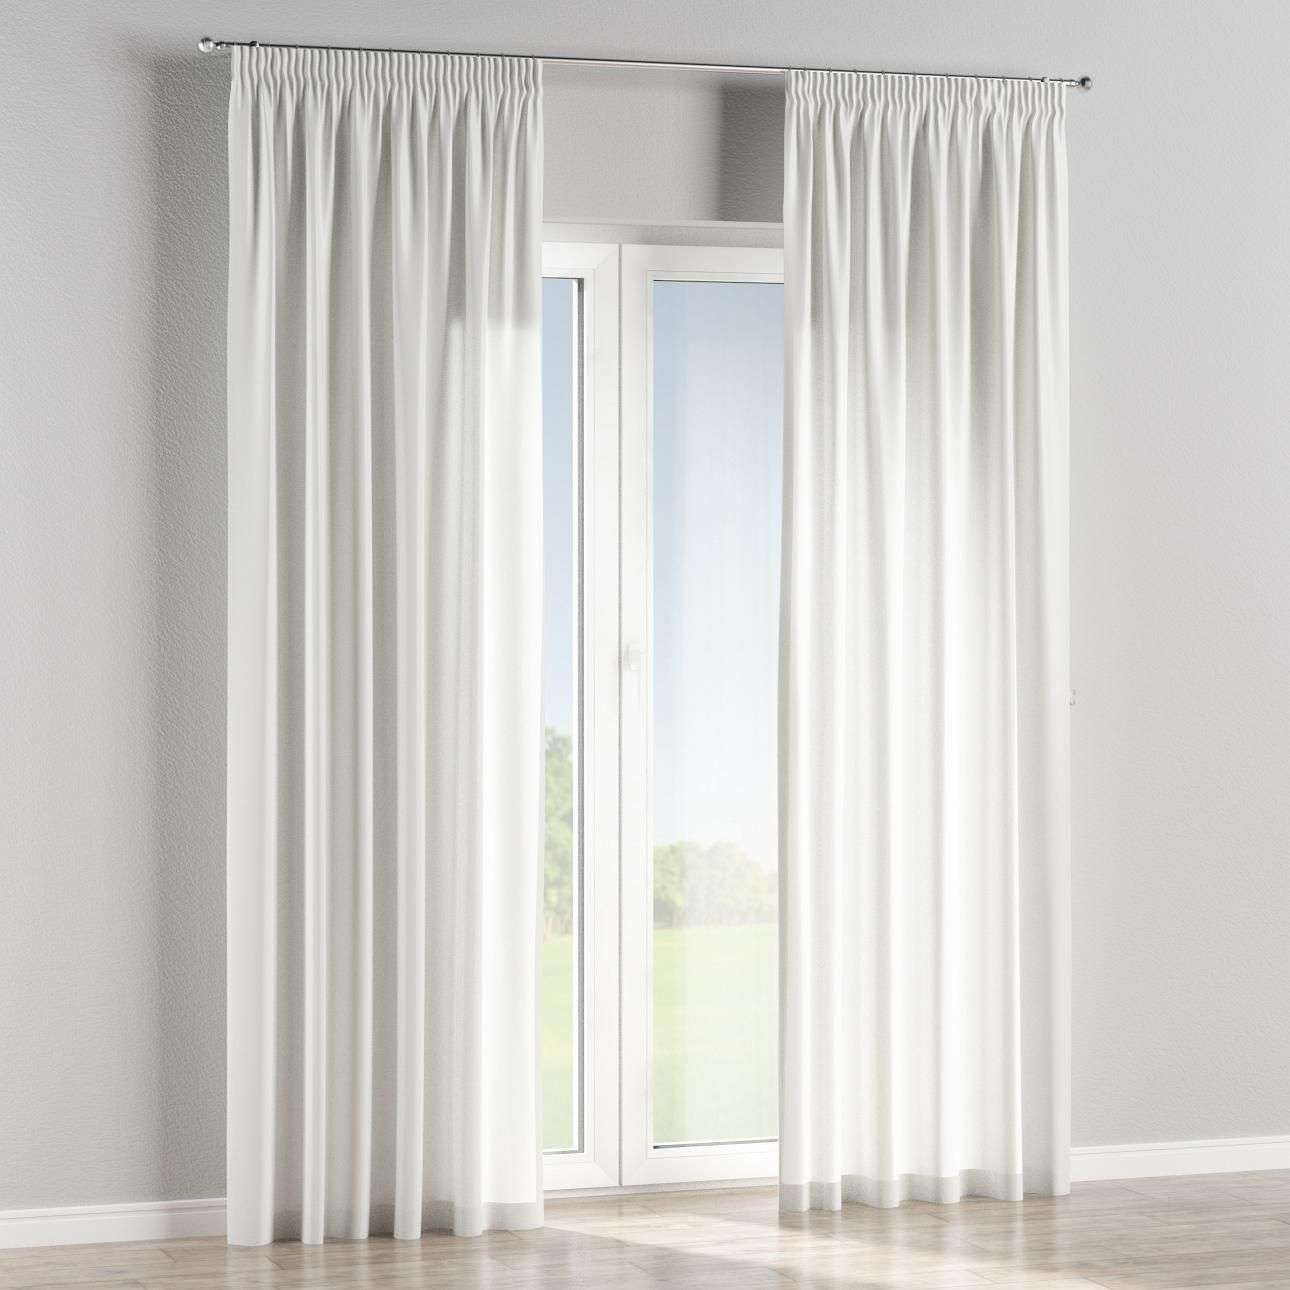 Pencil pleat curtains in collection Cardiff, fabric: 136-24